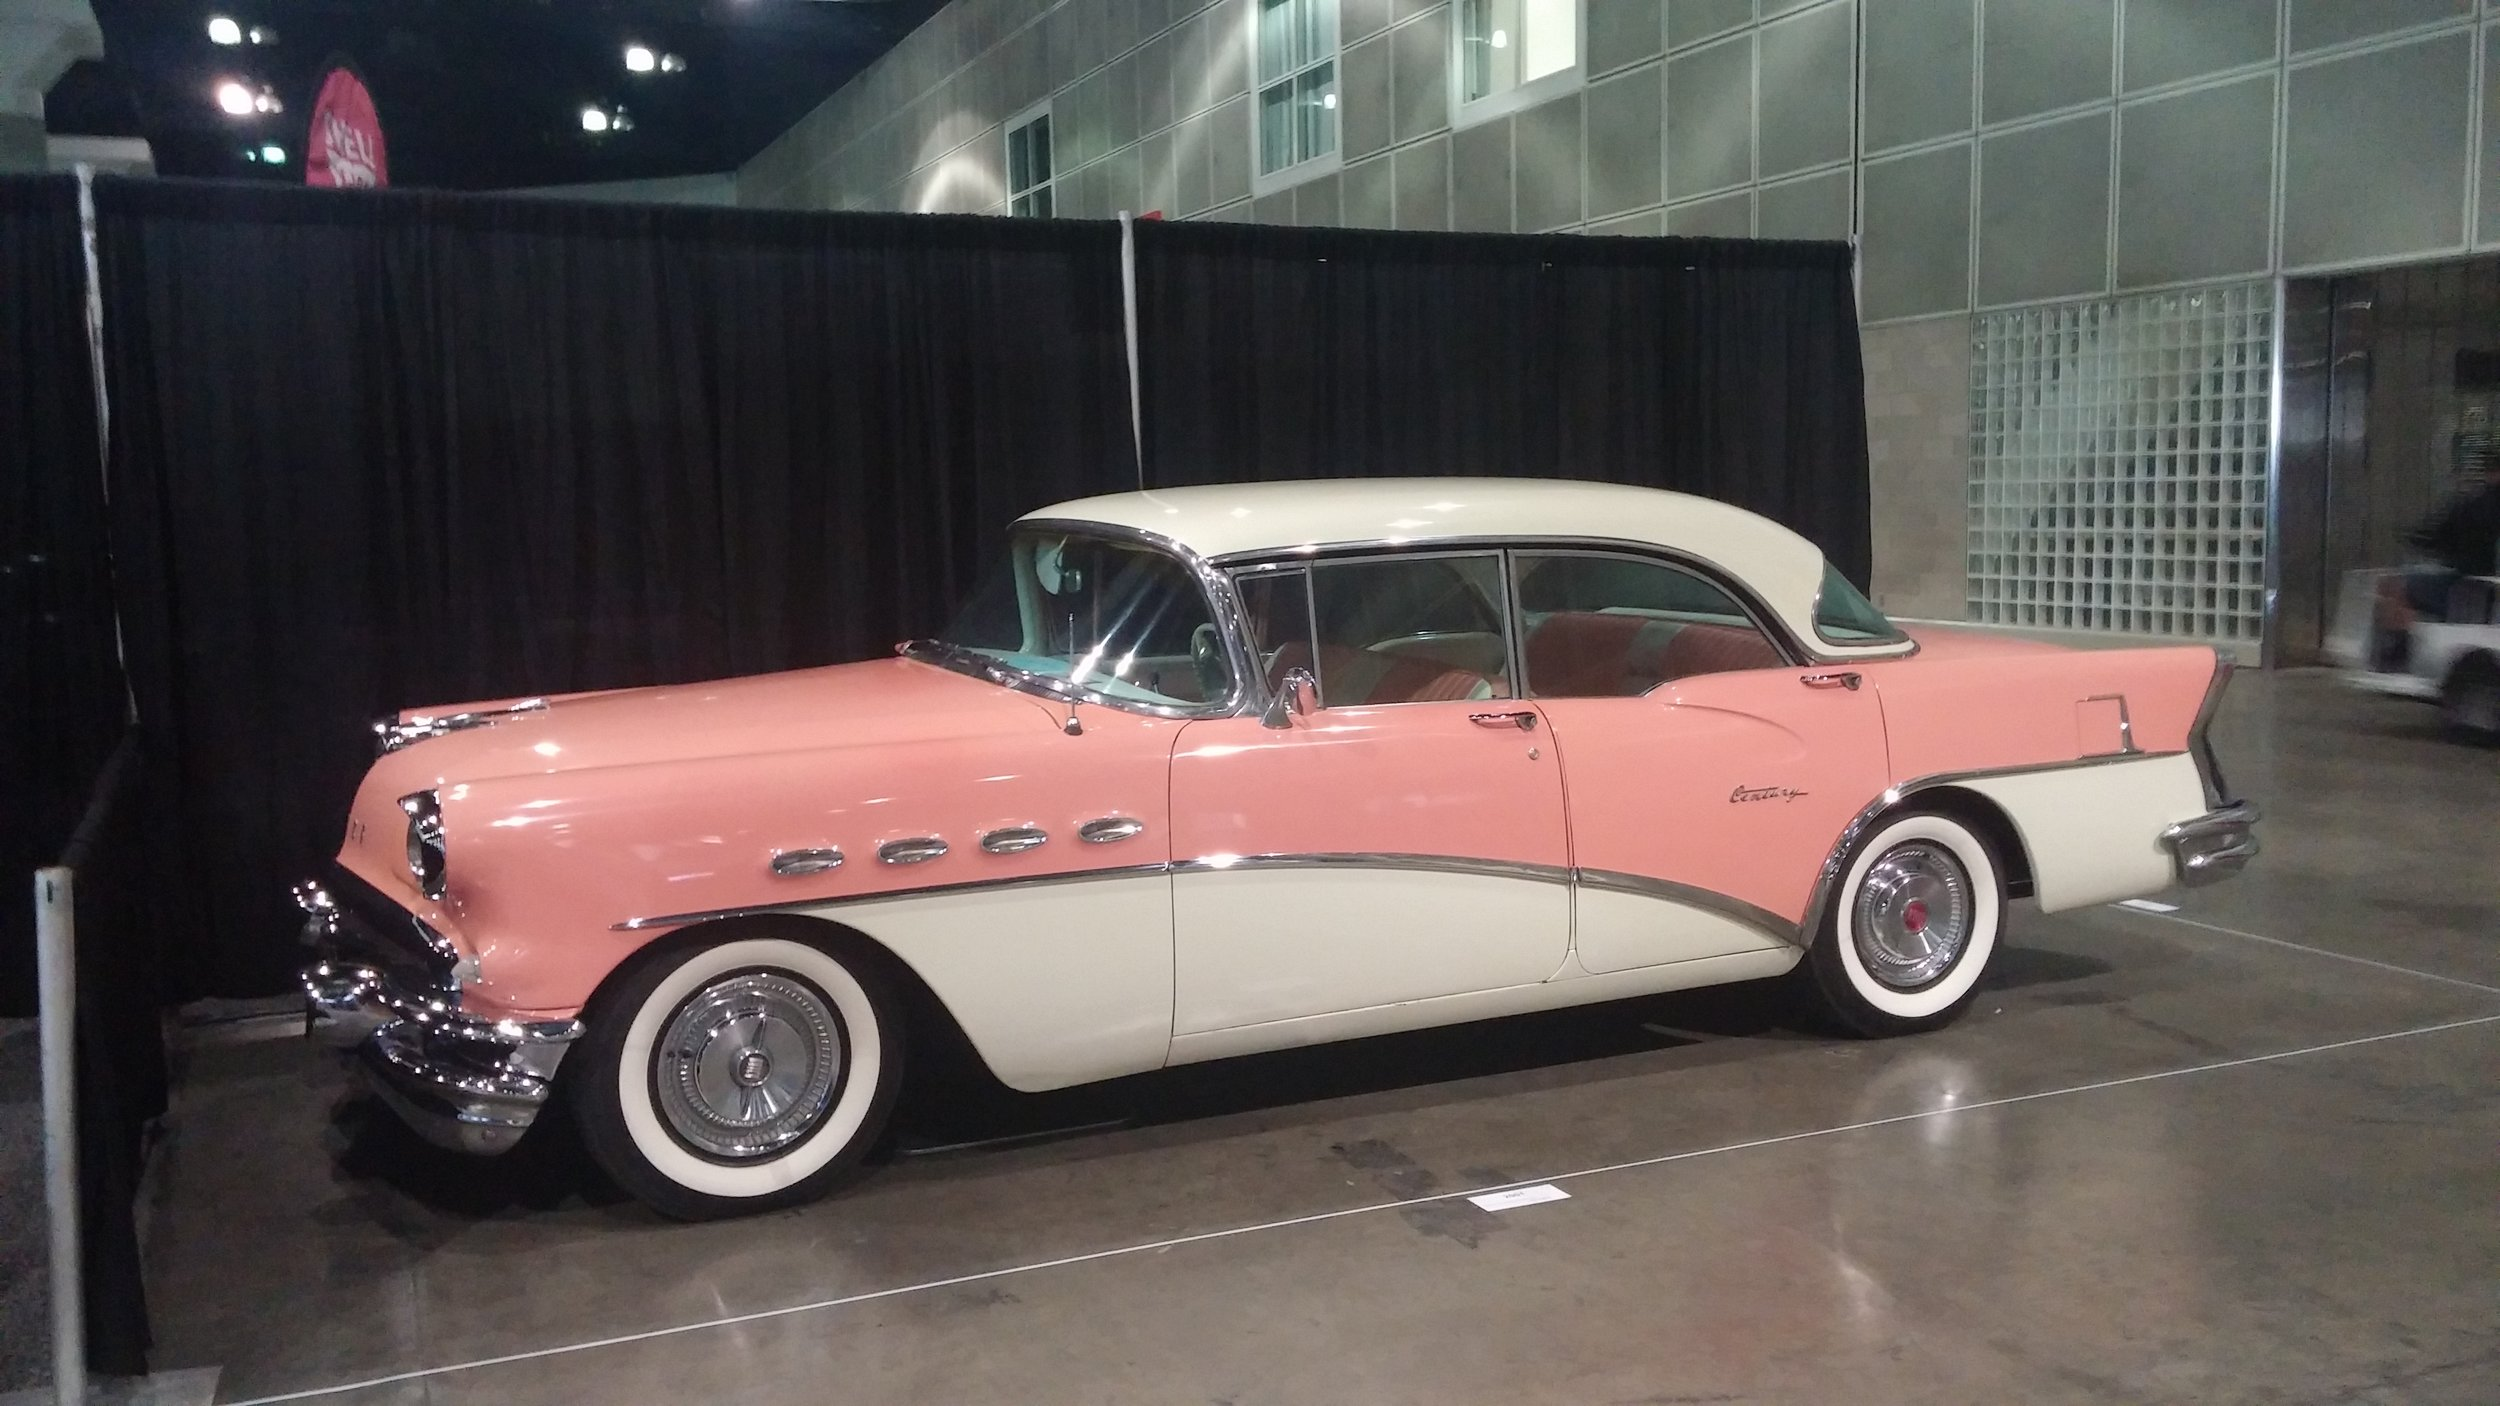 """1956 Buick Century - """"This Salmon and Cream beauty was purchased in derelict condition by our Dad in 1991. She was so ugly that we named her Josephine only because the name Christine was taken by the devil car featured in a horror movie back in the 70s. She was purchased as a project hobby for our Dad to keep busy after he retired and once my he finished restoring her she turned out to be absolutely beautiful."""""""